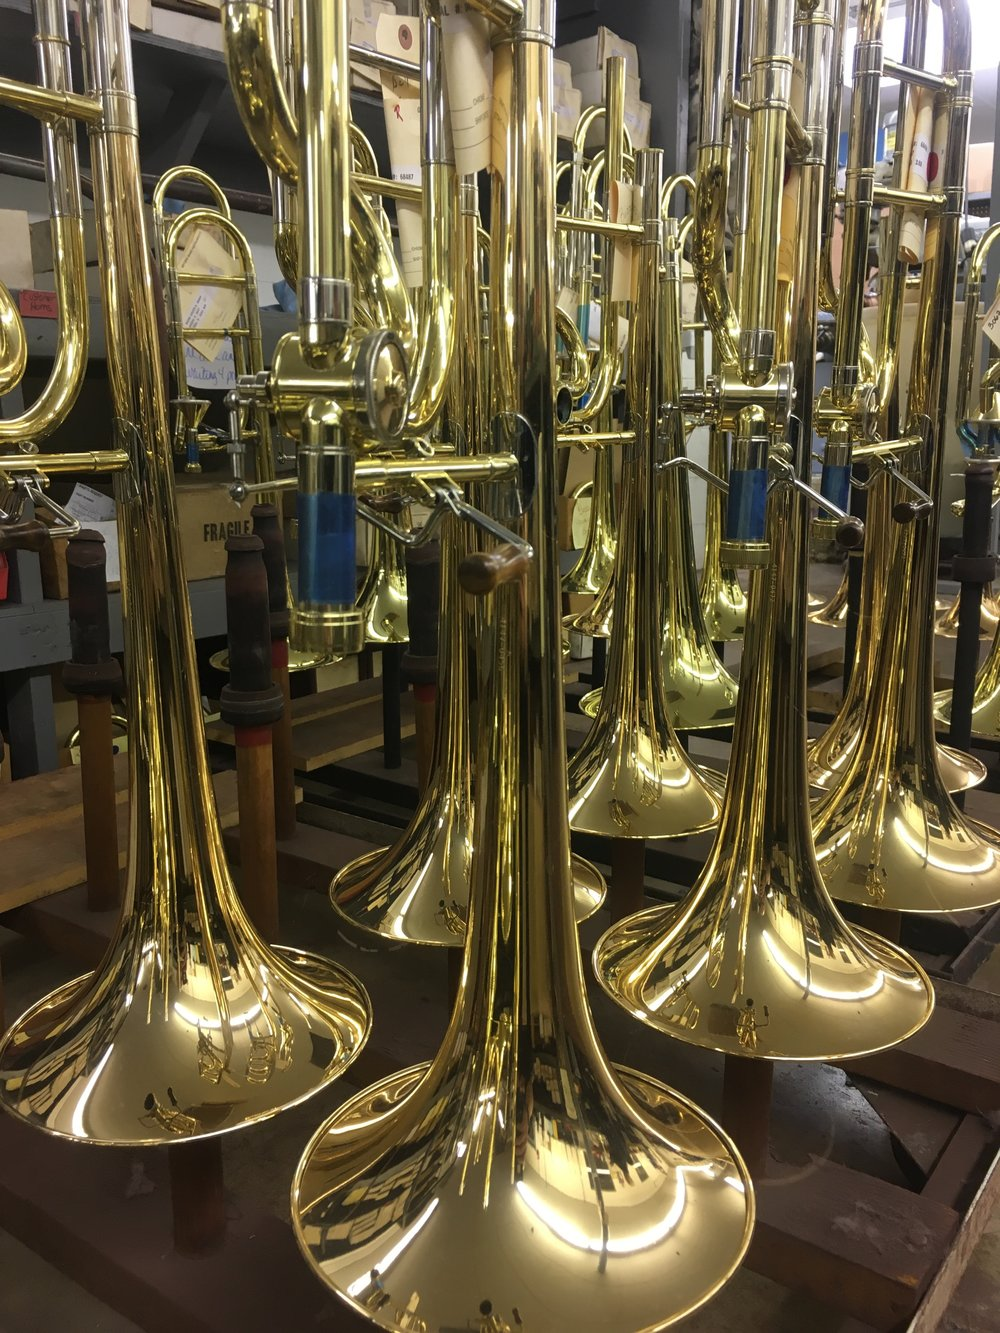 At the factory I get to see all the trombones before they're famous!